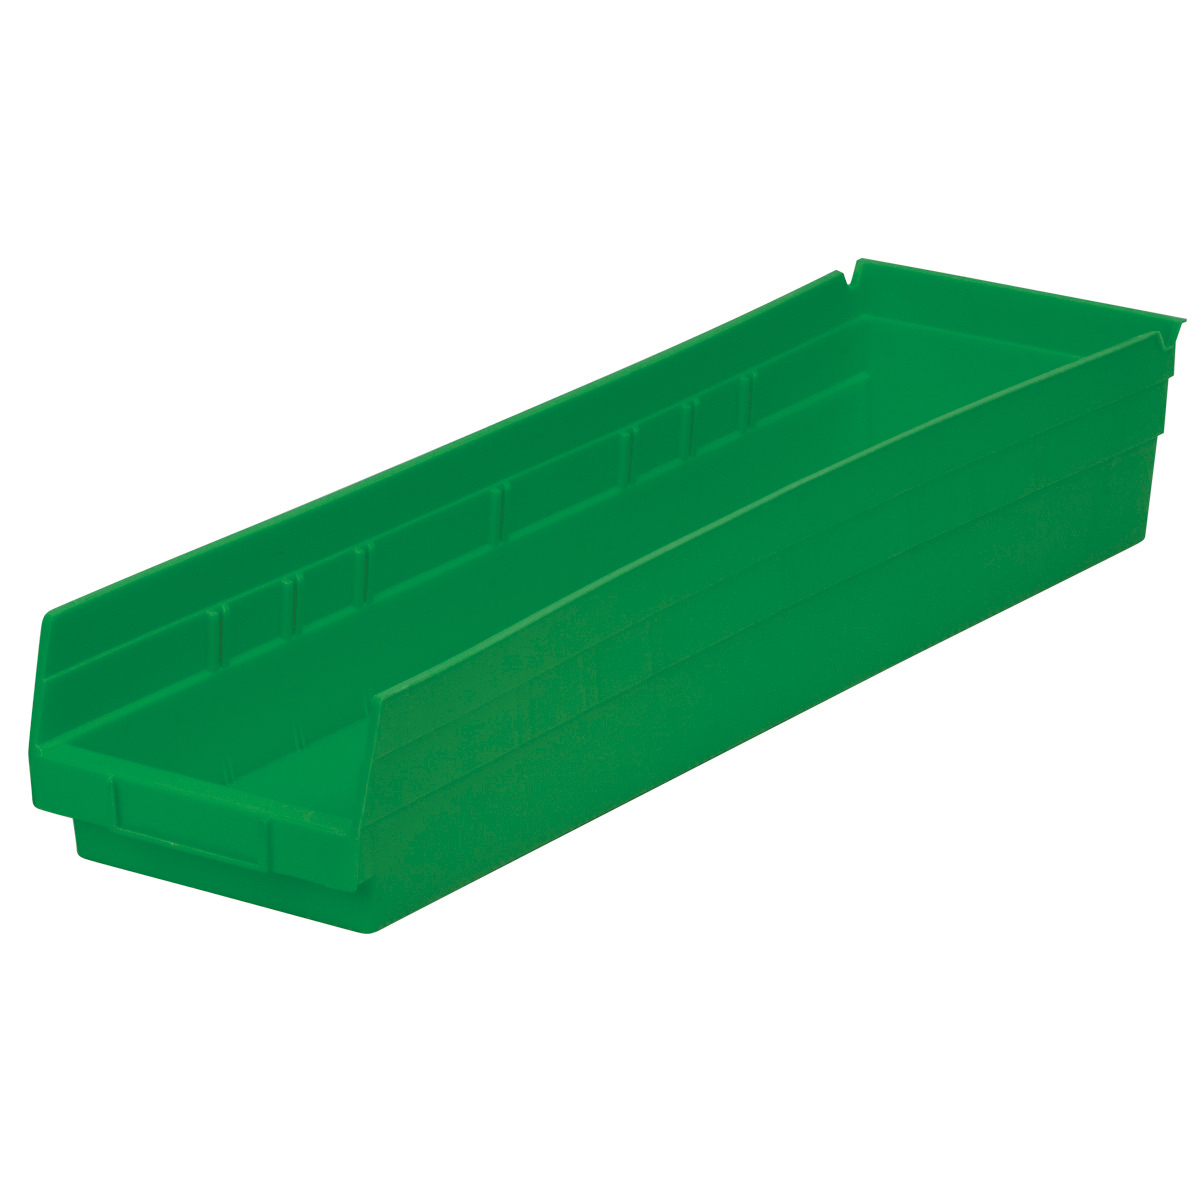 Shelf Bin 23-5/8 x 6-5/8 x 4, Green (30164GREEN).  This item sold in carton quantities of 6.